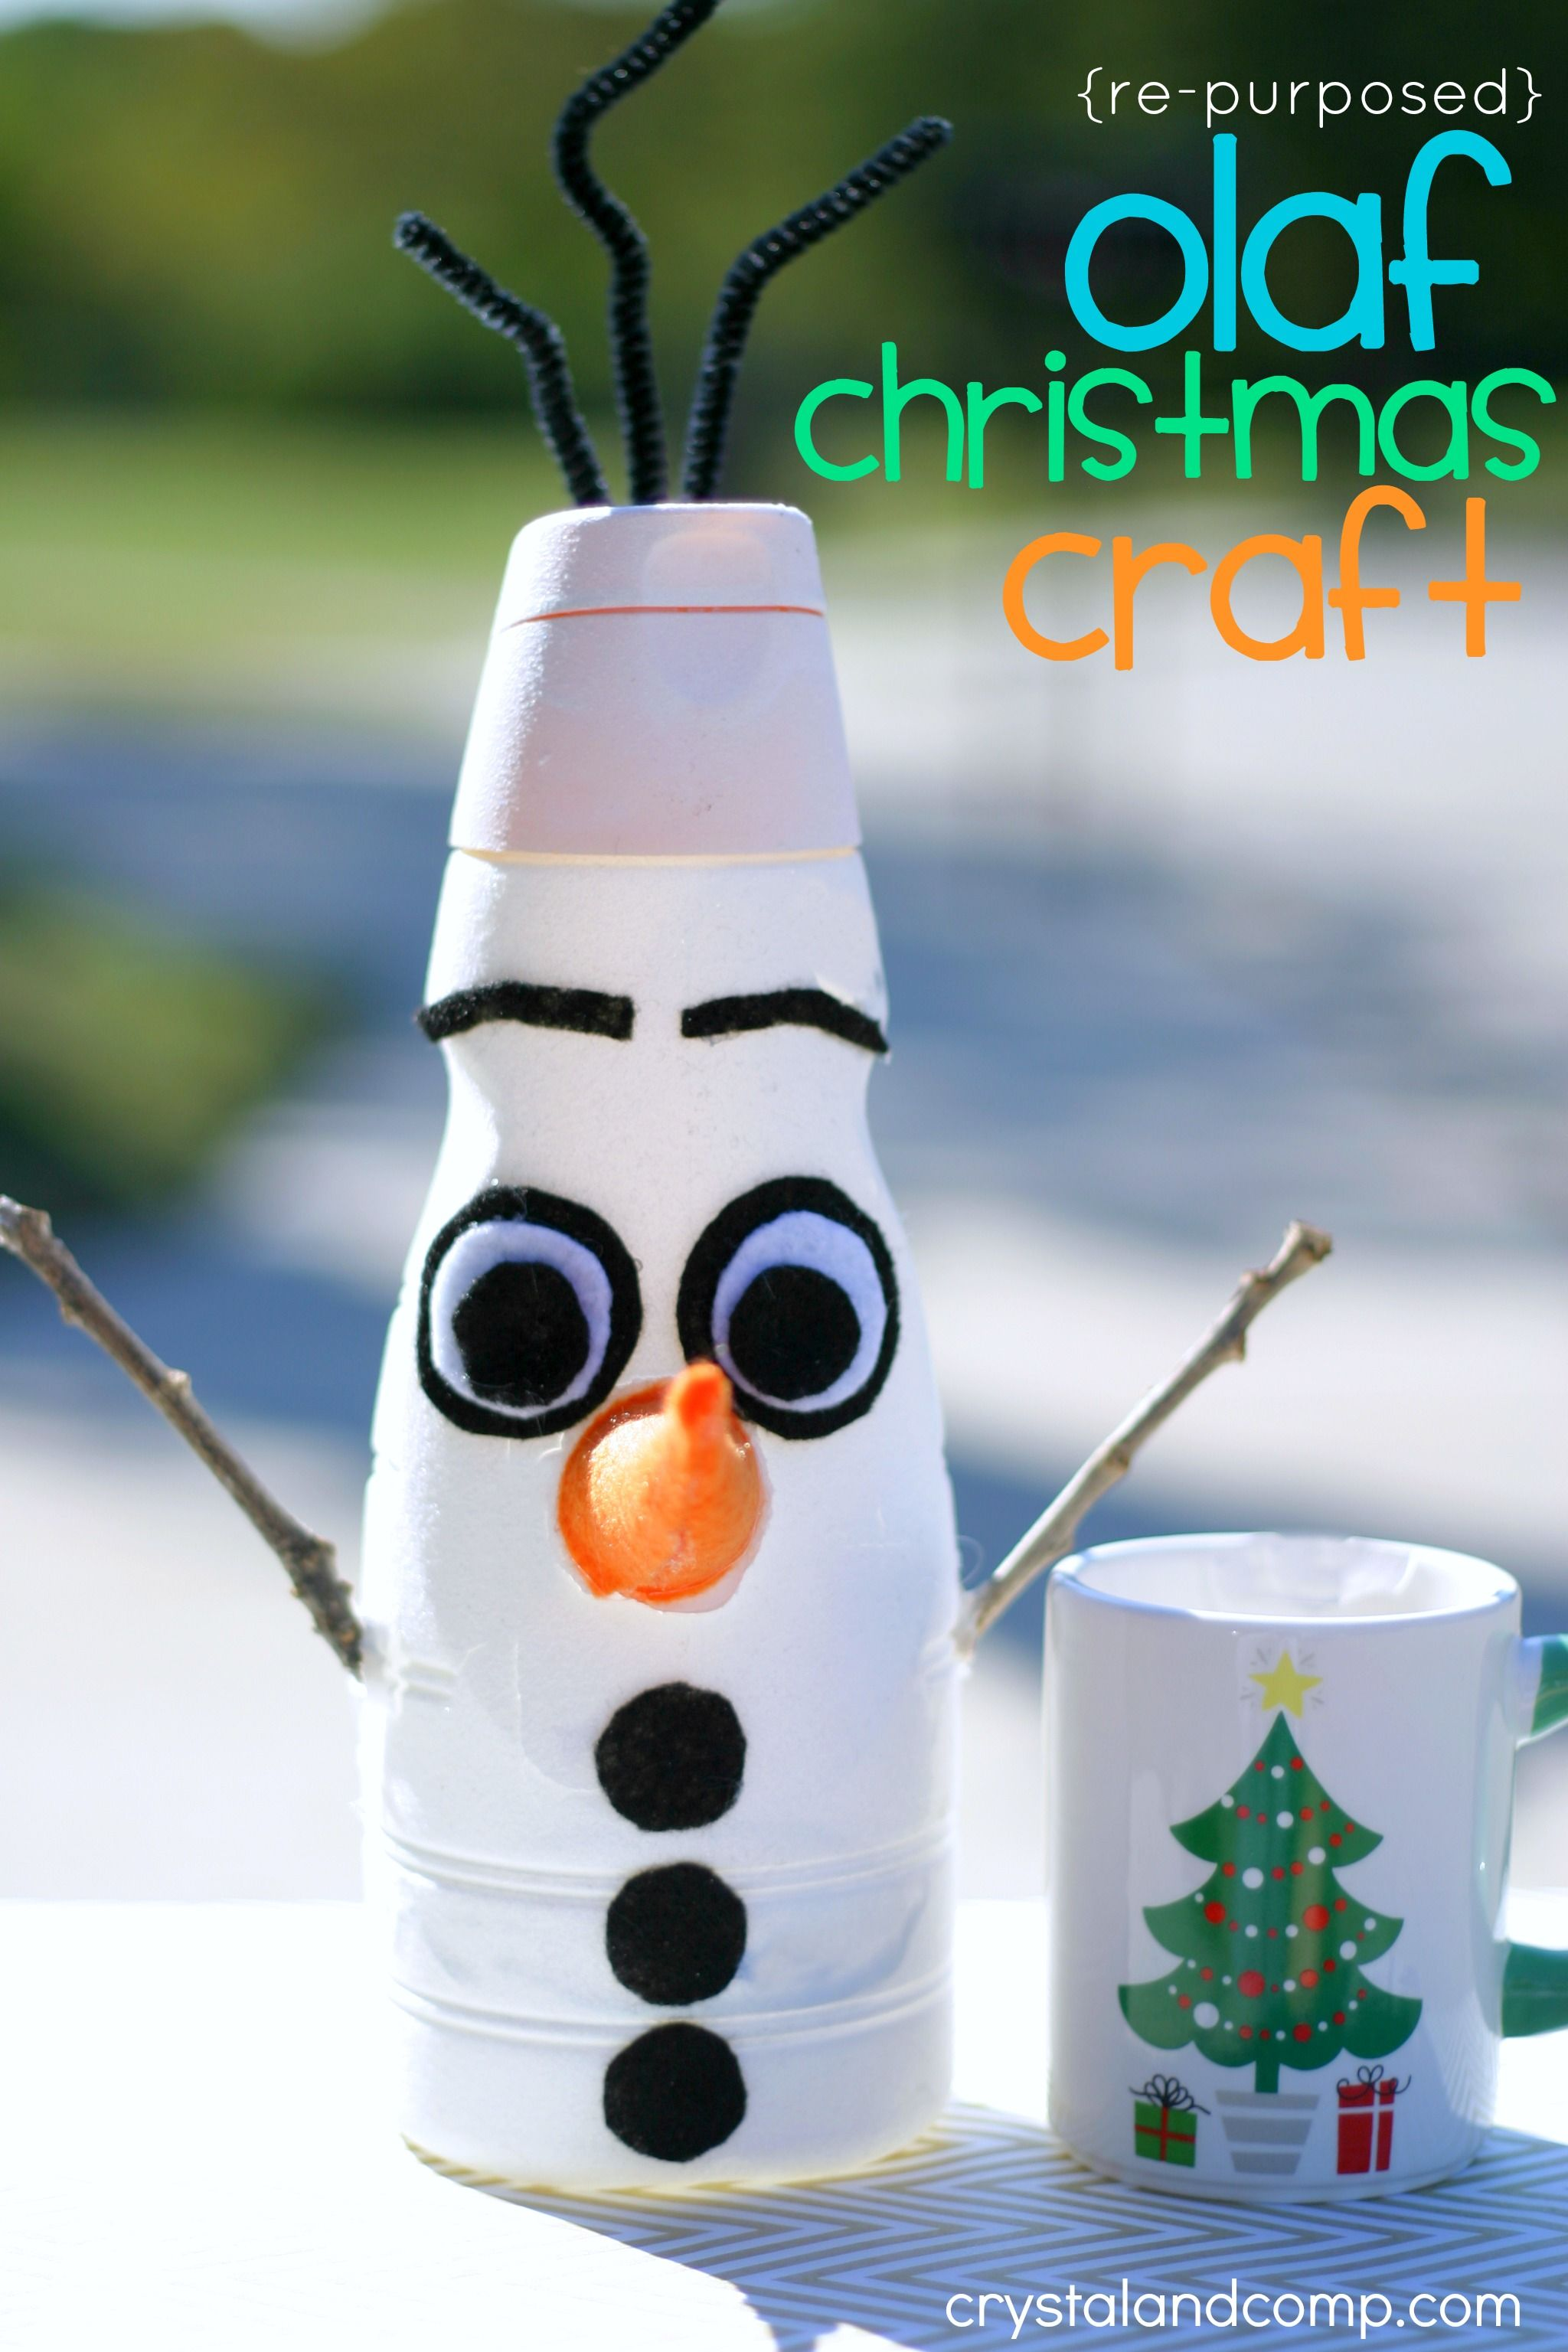 Olaf From Frozen Christmas Craft | Learning With Disney | Pinterest ...